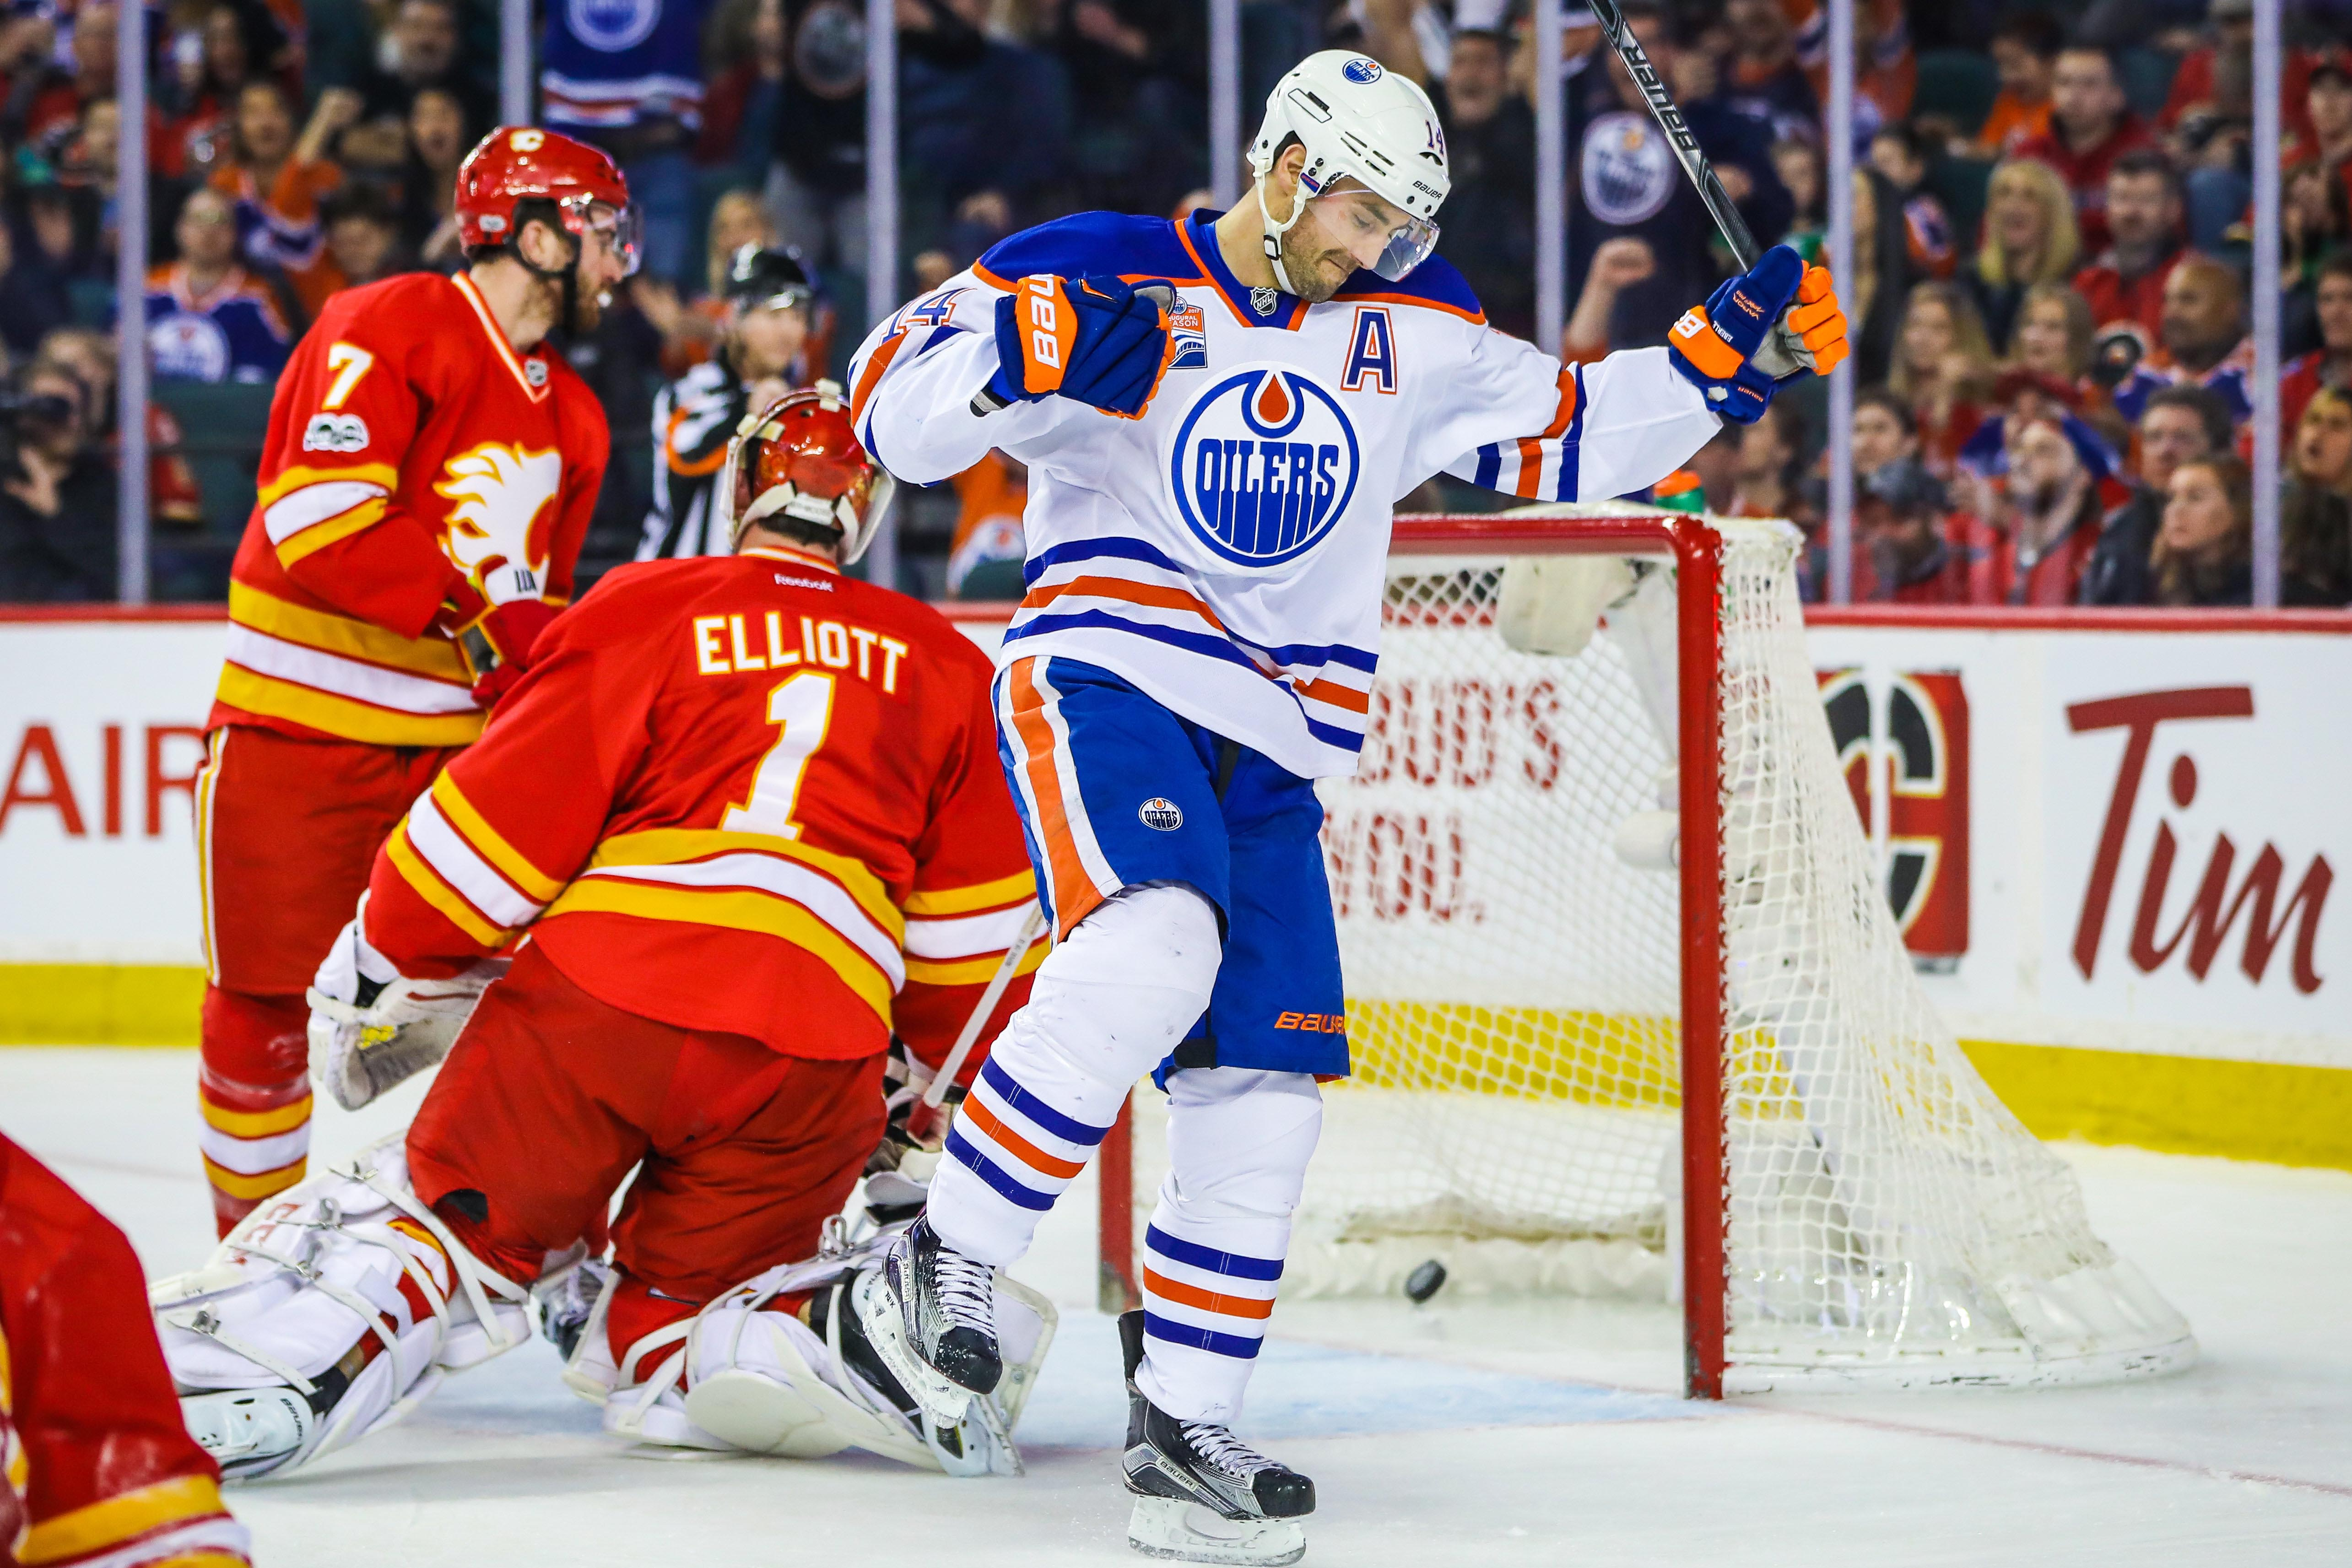 Barring a scoring streak, Eberle is headed for his lowest full-season point total since his rookie year.